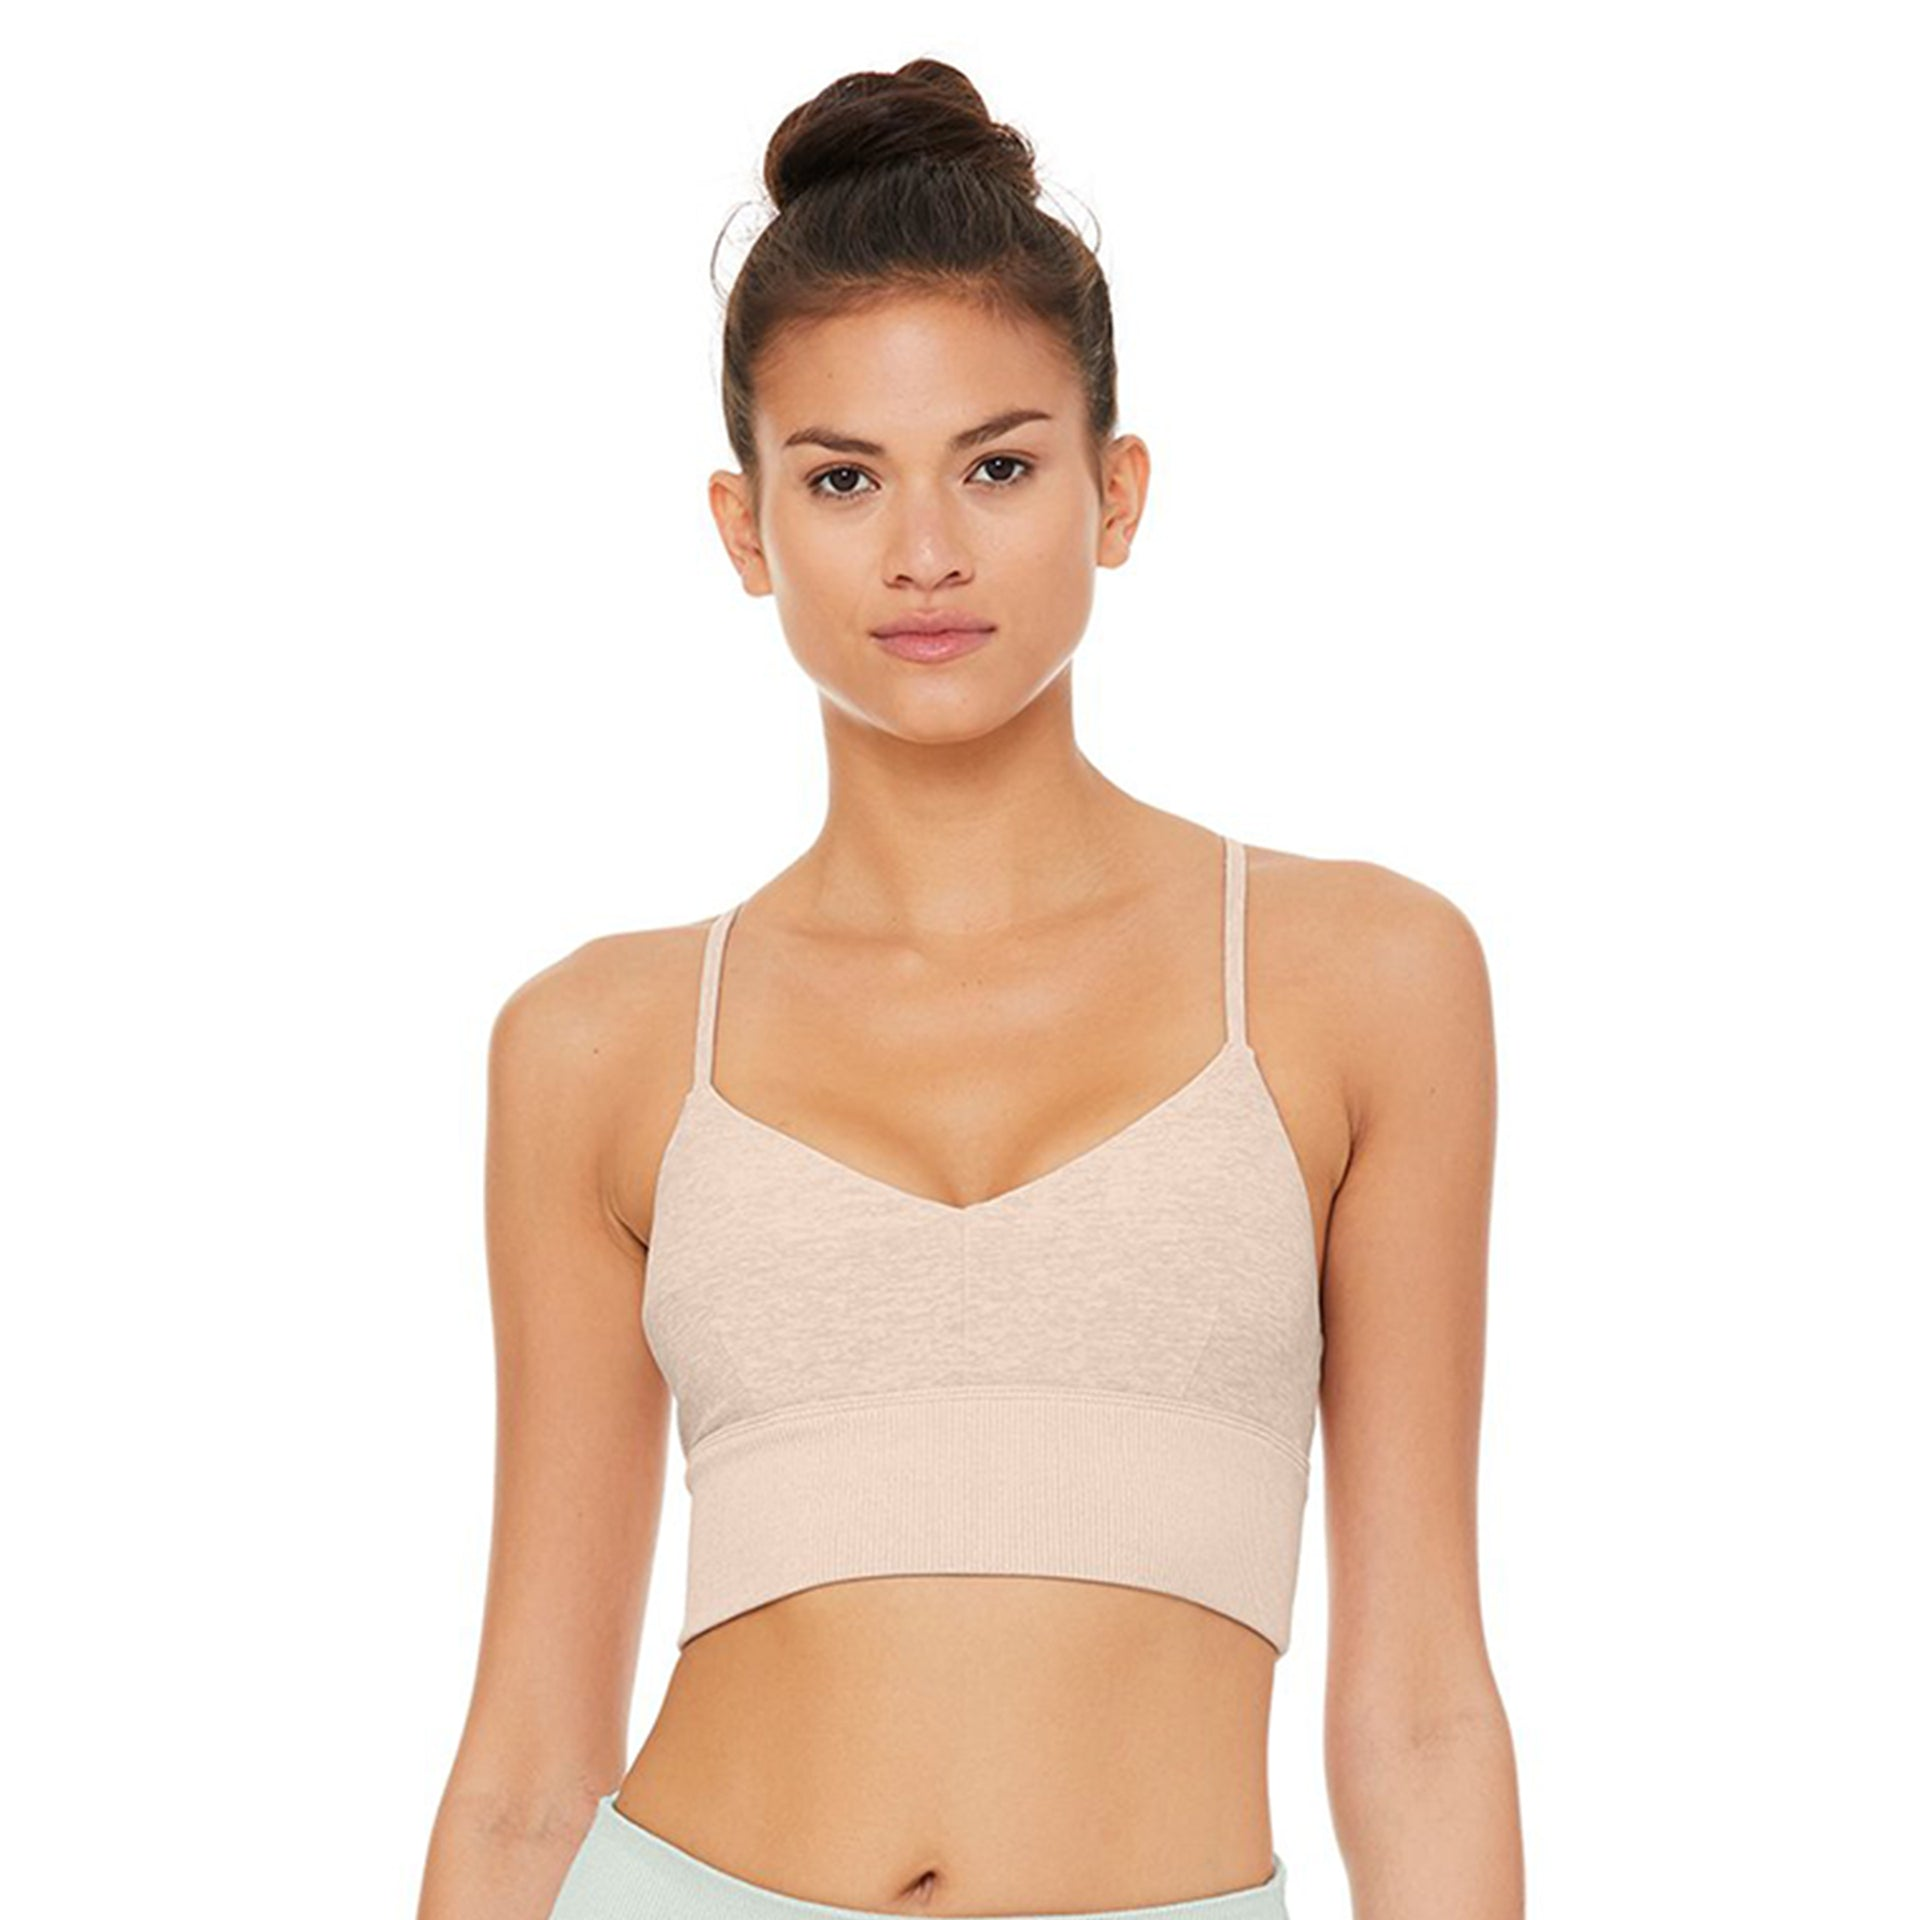 Alosoft Lavish Bra in Nectar Heather